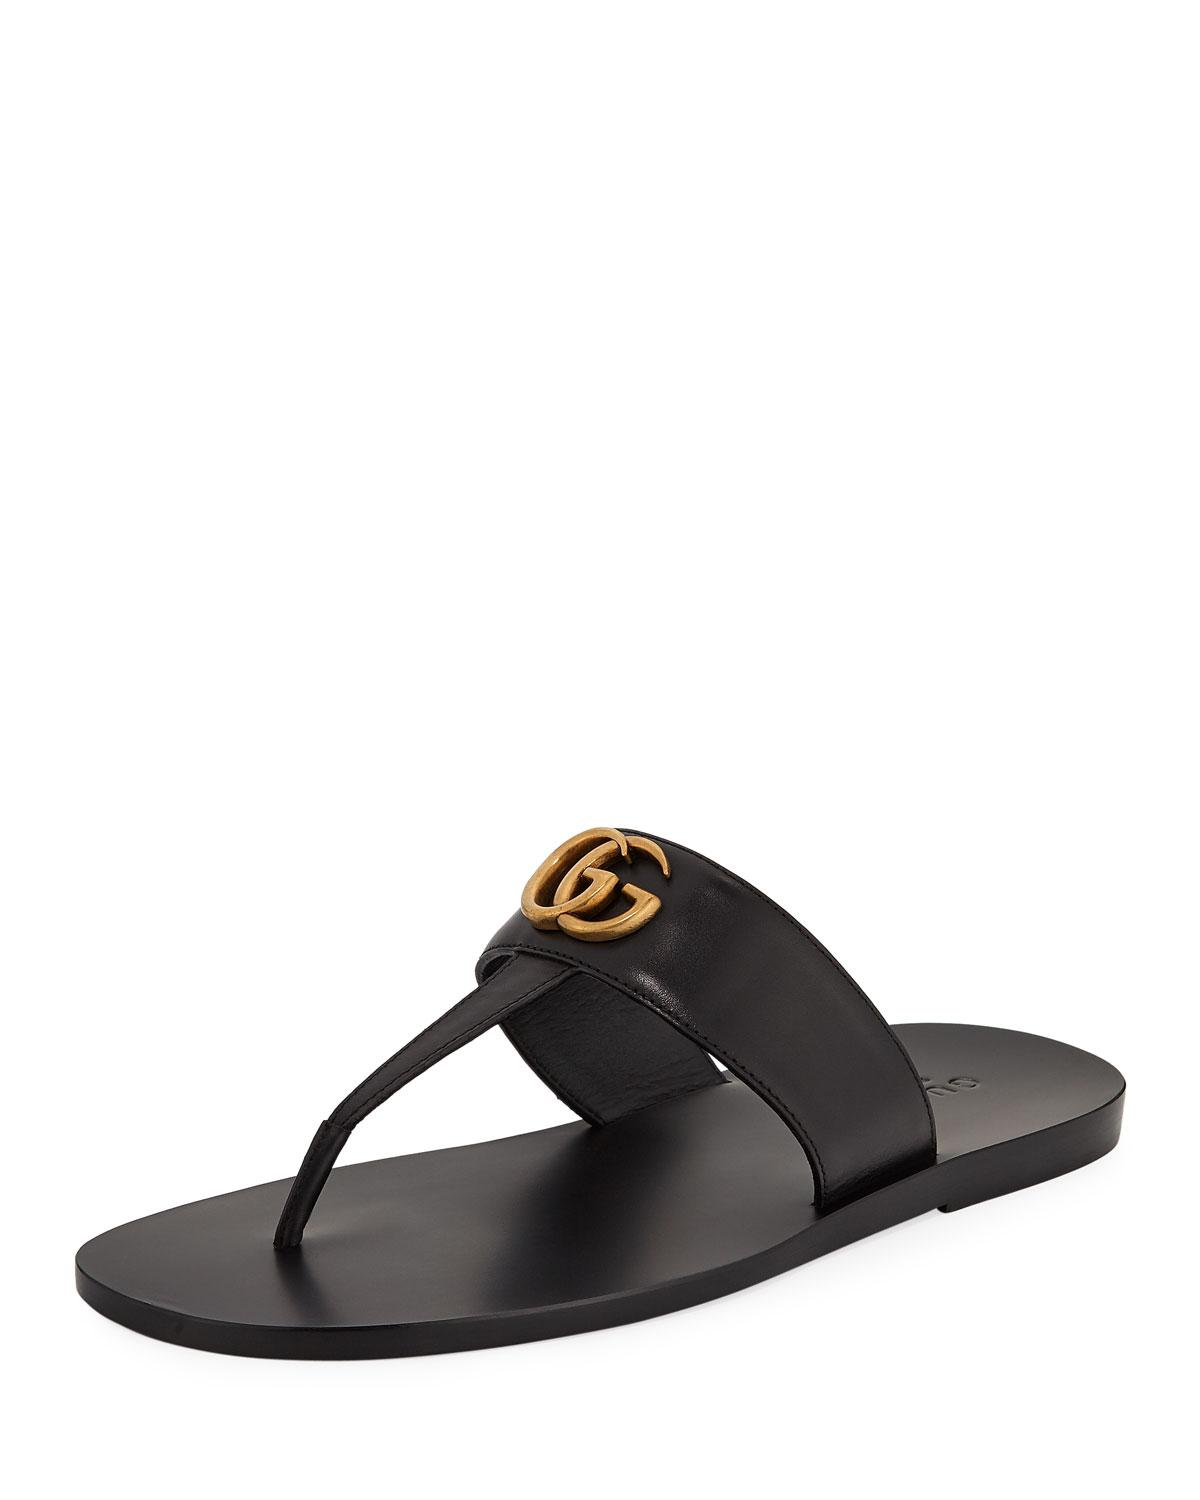 1bcb3996d9c4 Gucci Men s GG-Stud Leather Thong Sandals in Black - Lyst